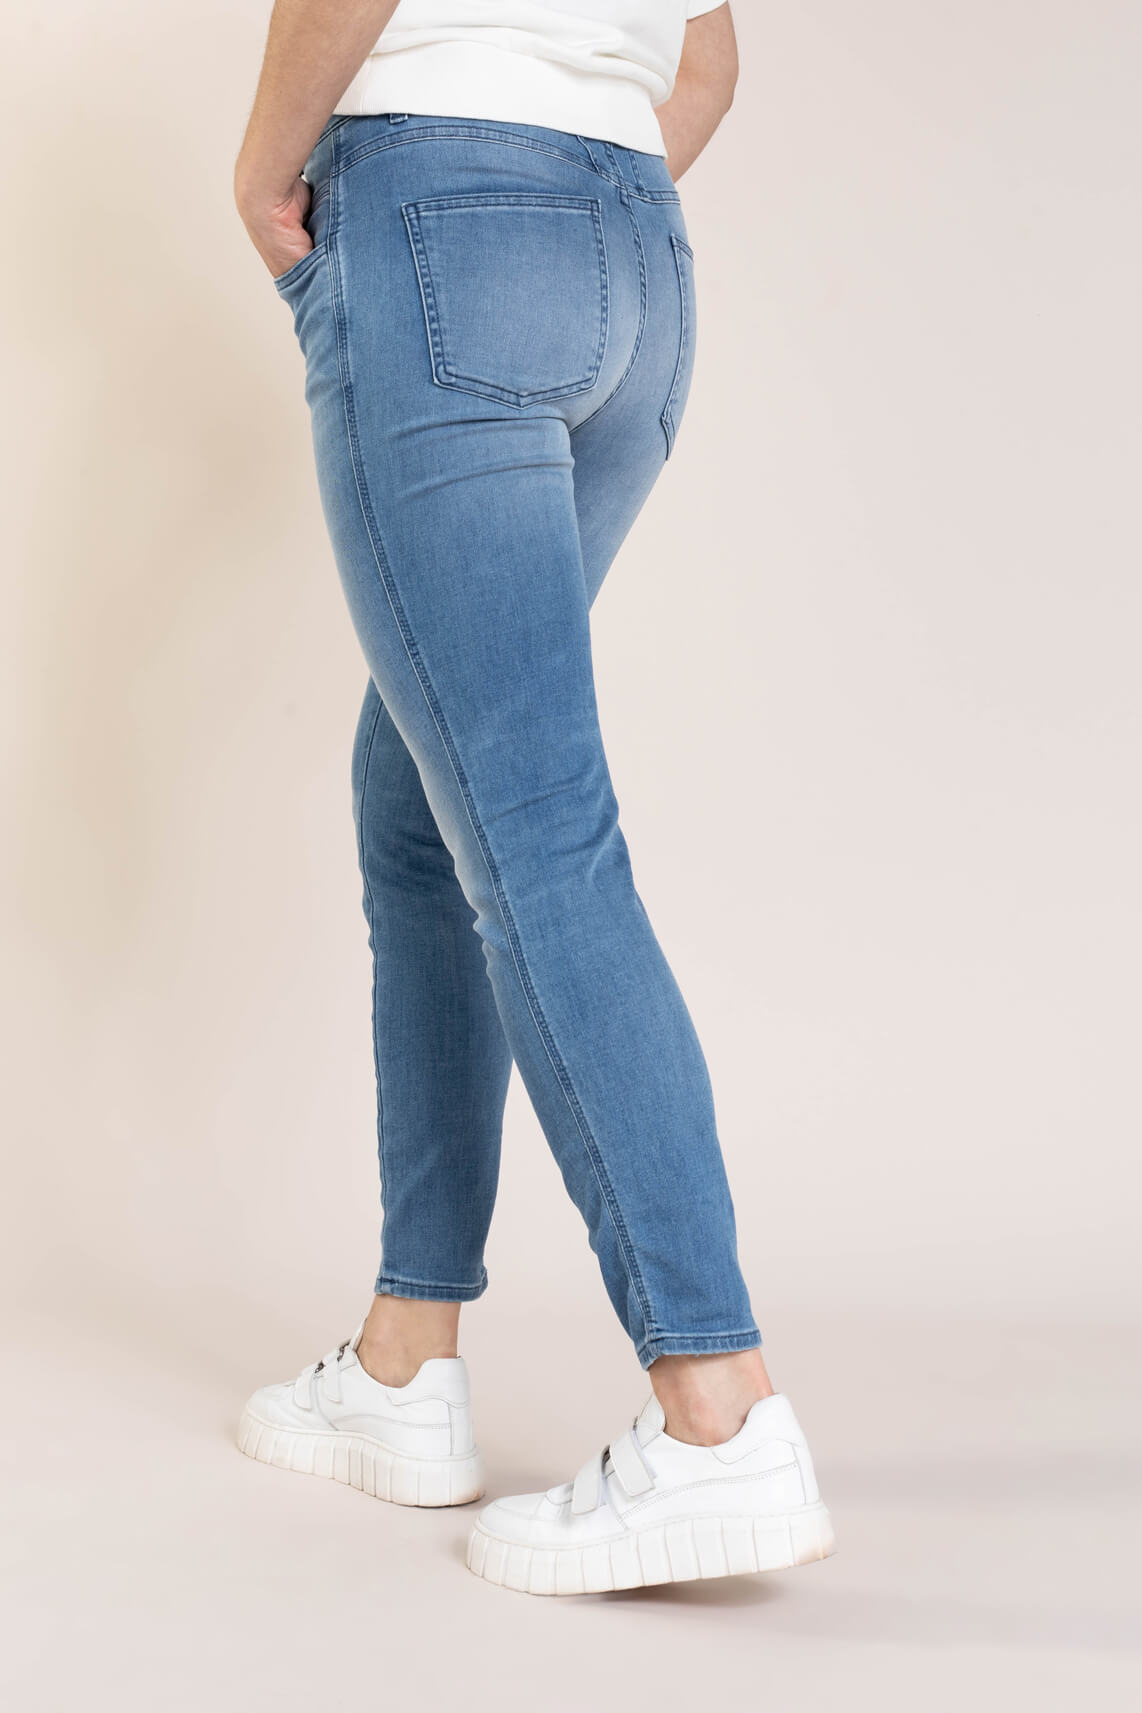 Closed Dames Skinny pusher jeans Blauw